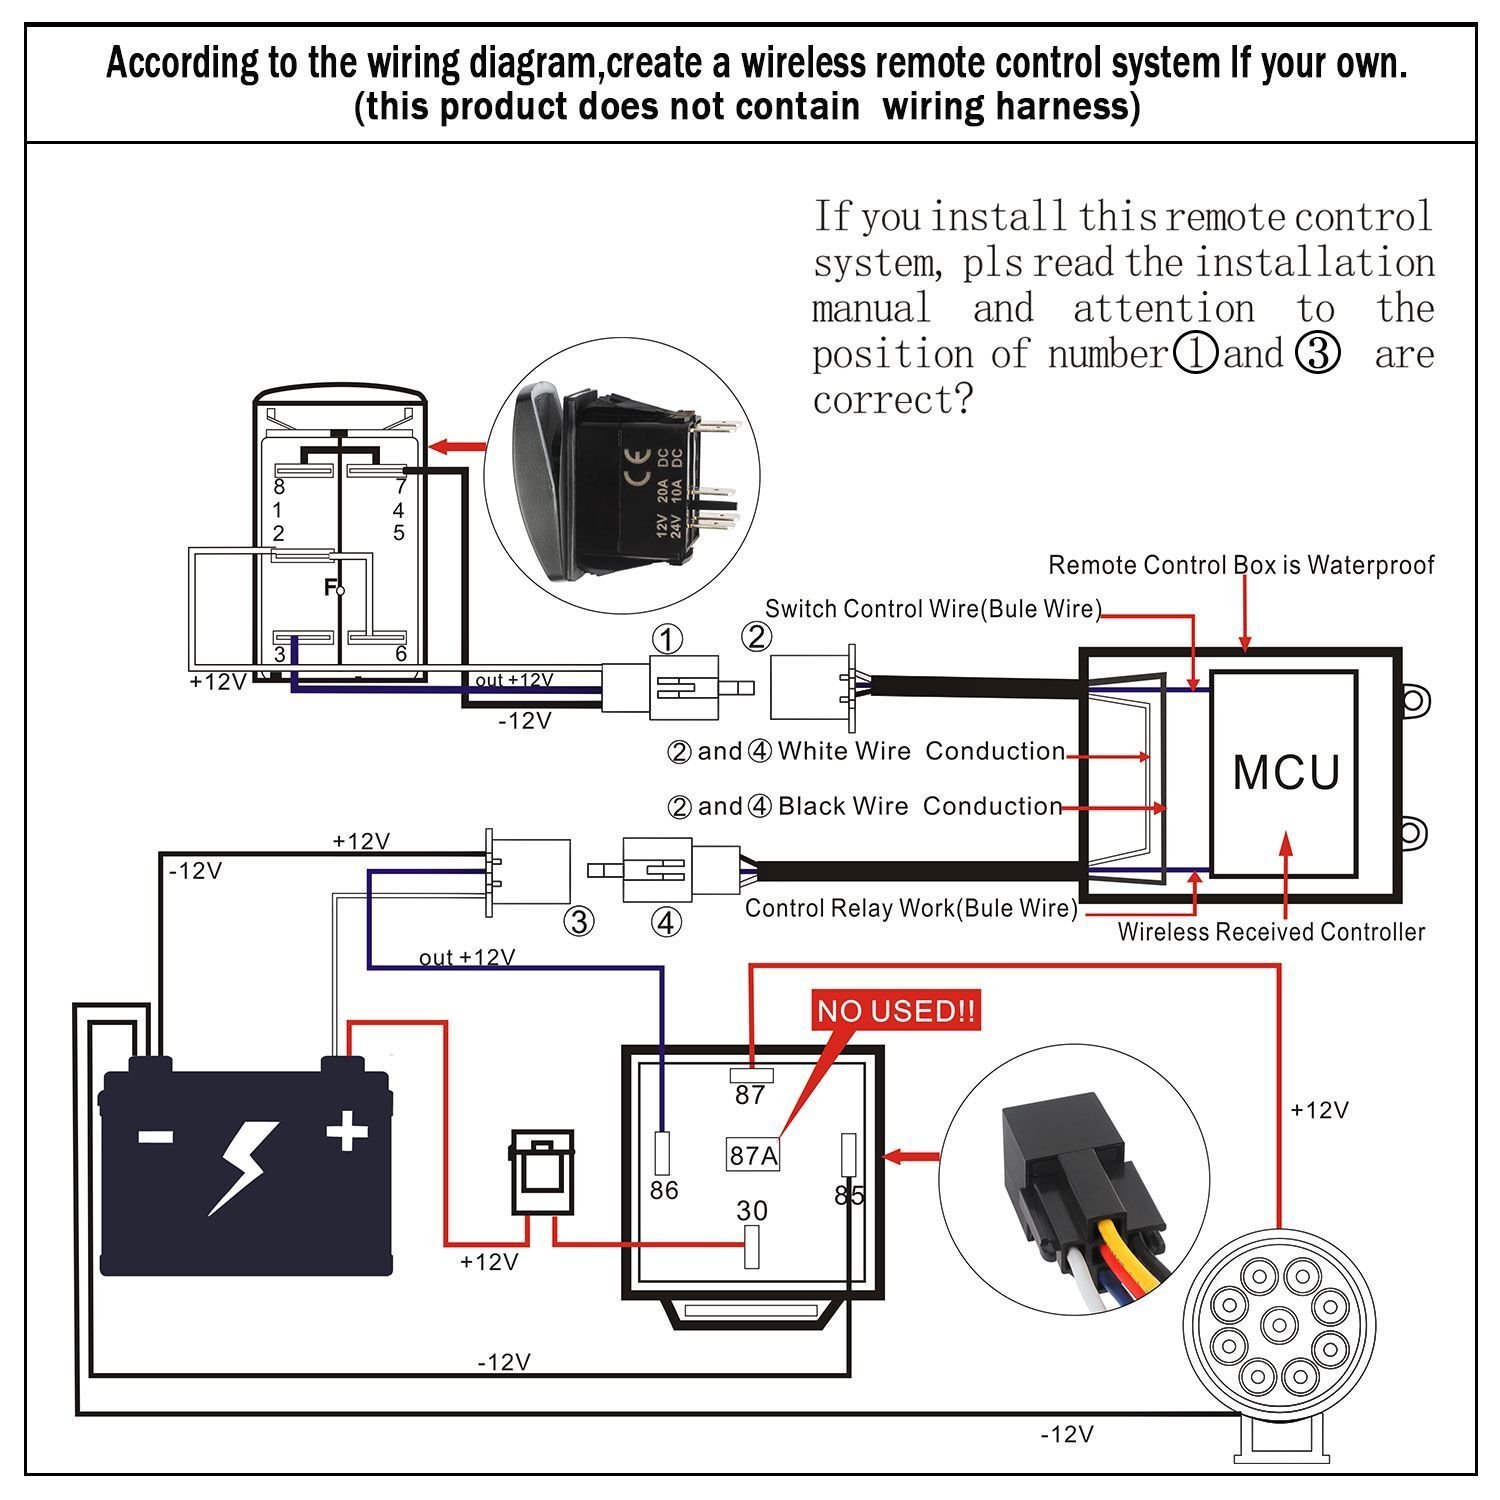 81kLCQRAQgL._SL1500_ Under Rc Led Wiring Diagram on converting to electricity diagrams, rc receiver wiring, elevator controls diagrams, elevator door panels diagrams, rc receiver connection diagrams, rc bec wiring, rc car diagram, rc helicopter diagram, rc car wiring, rc walls diagrams, rc helicopter wiring,